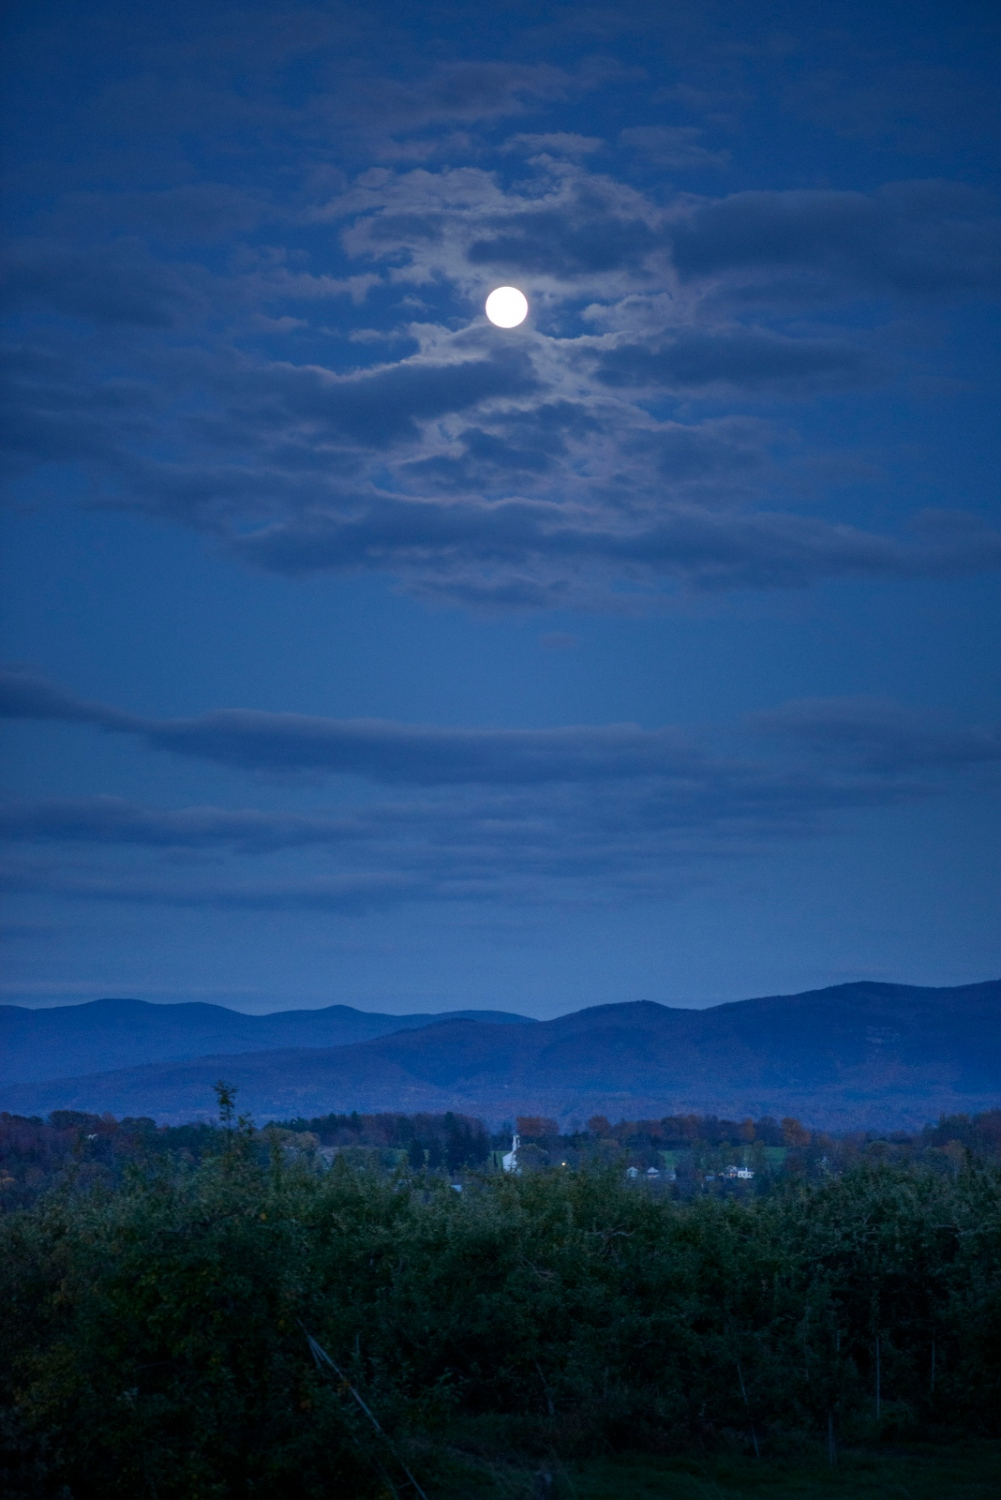 Full moon over the valley, looking east from Sunrise Orchards, Cornwall, Vermont.